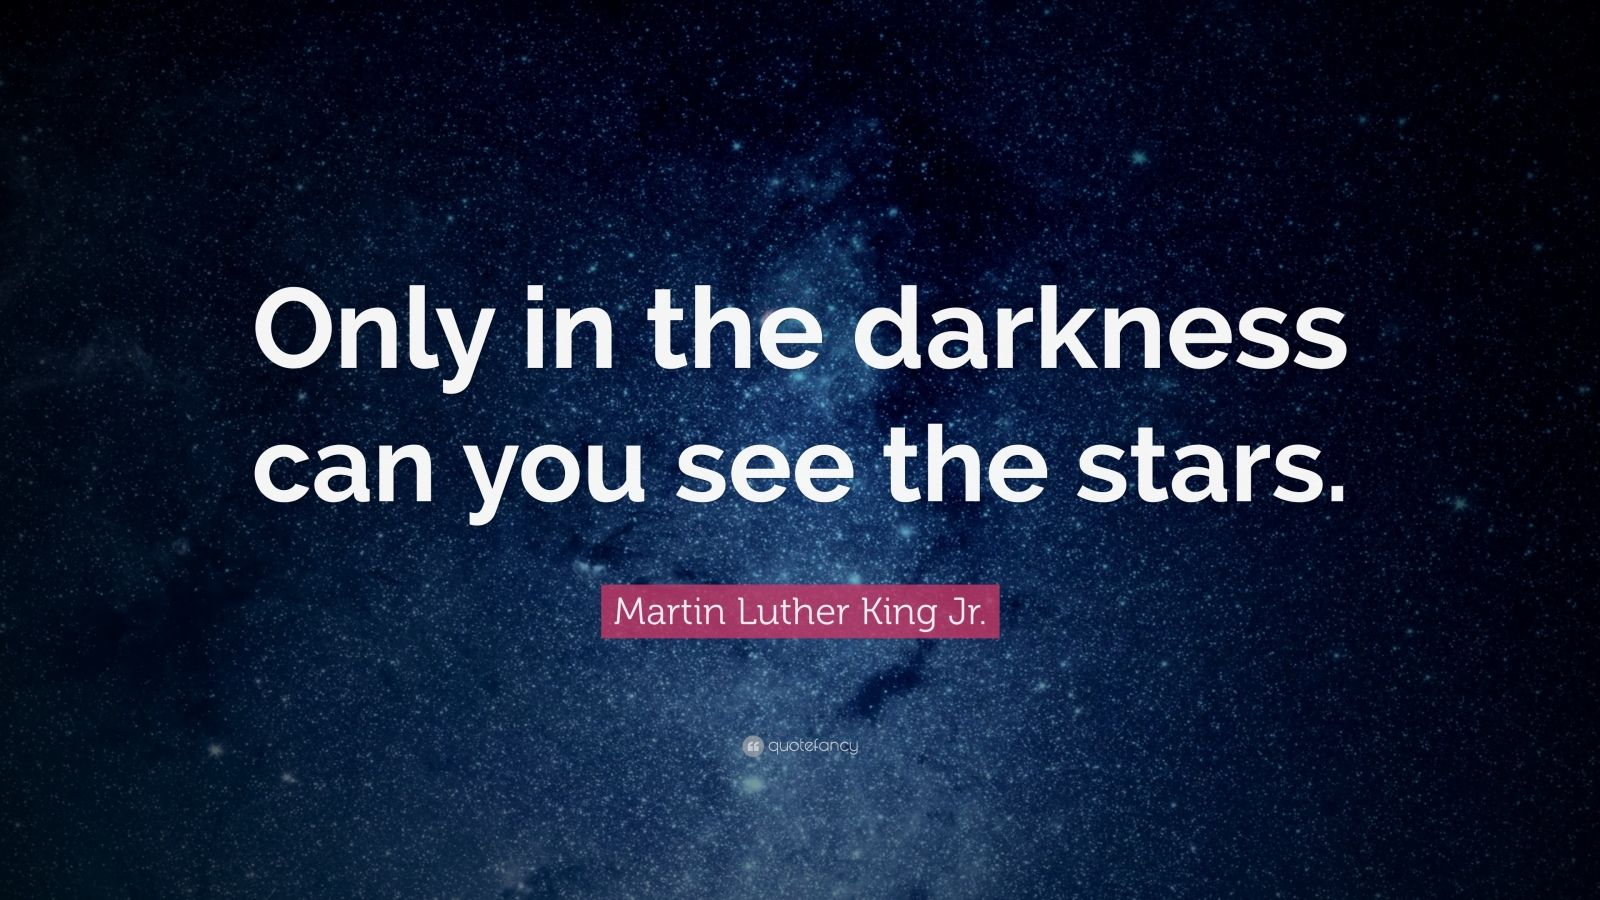 Martin Luther King Wallpaper Quotes Martin Luther King Jr Quote Only In The Darkness Can